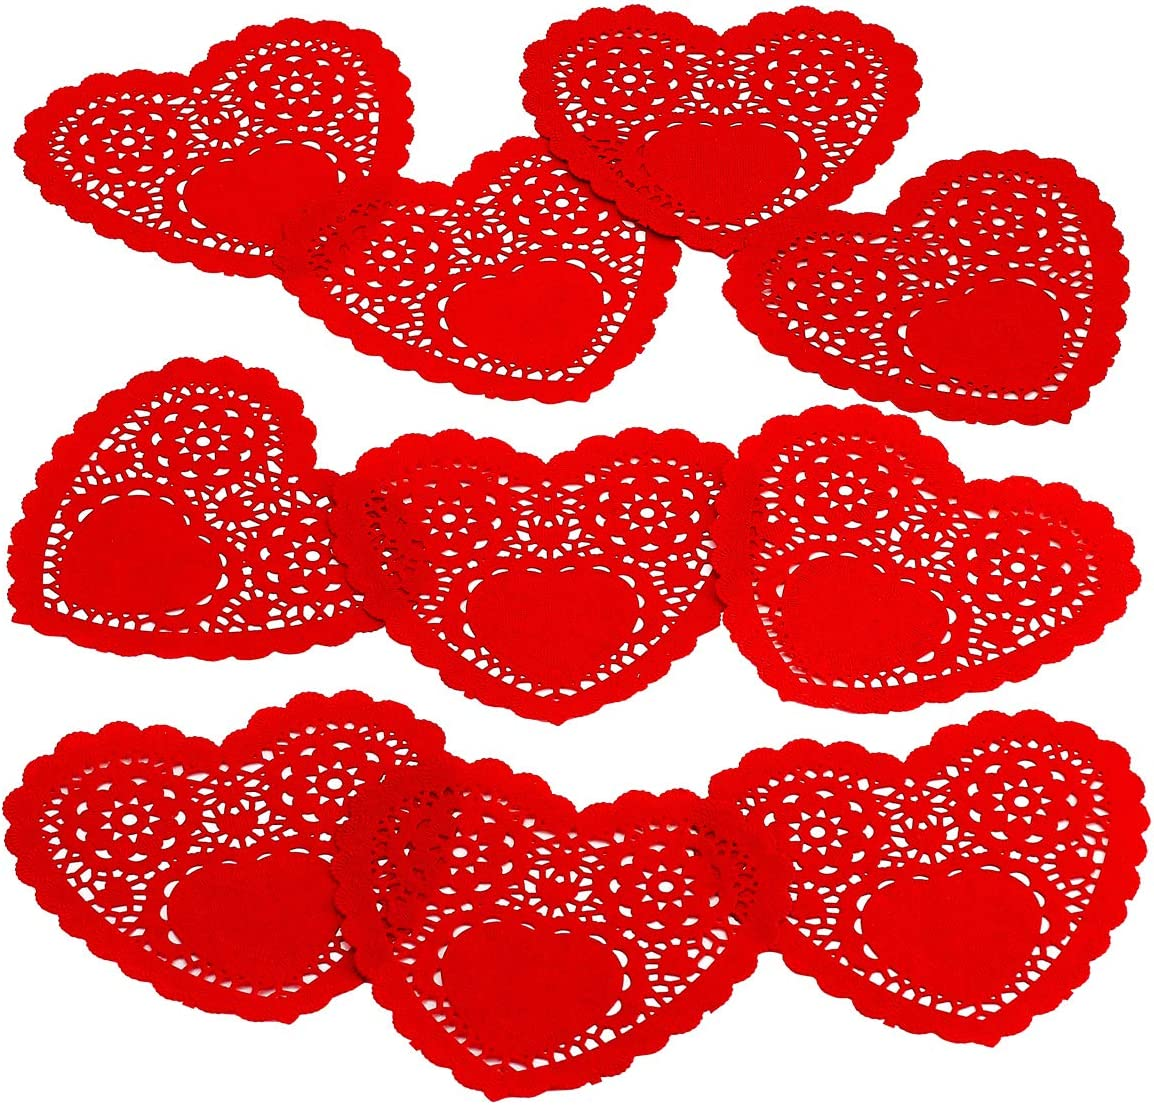 Kicko Red Heart Doilies - 30 Department store Disposable Inches Pack Dinner 6 National uniform free shipping